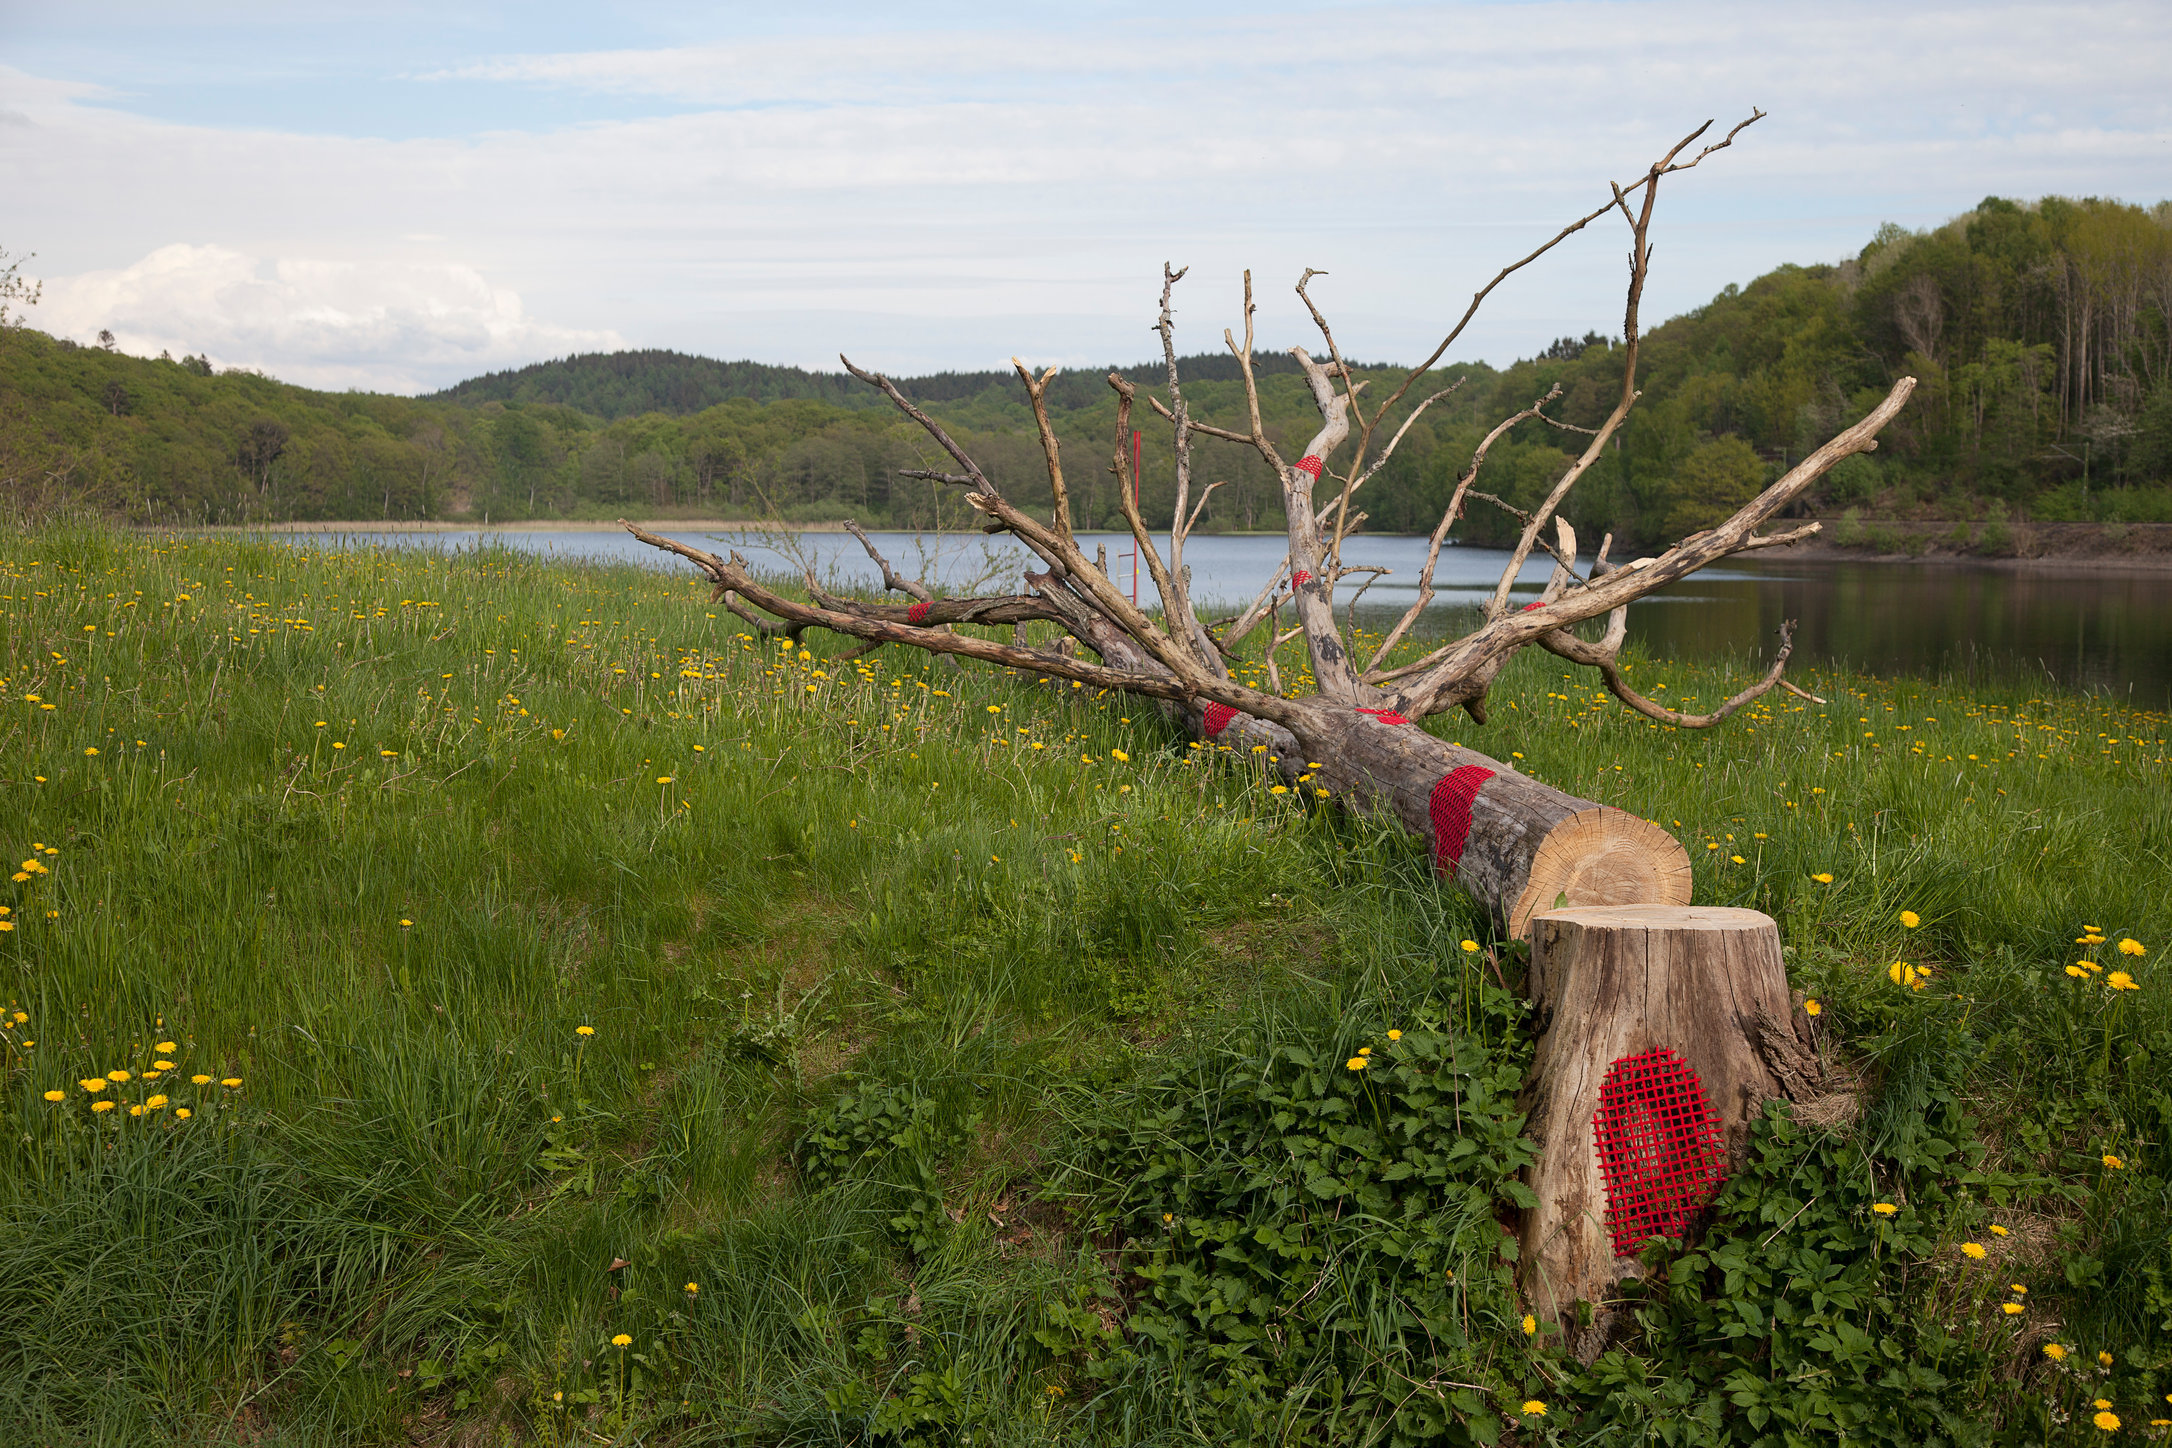 For the exhibition Gothenburg Green World mended dead tree with yarn. Mölndal, Sweden 2016.